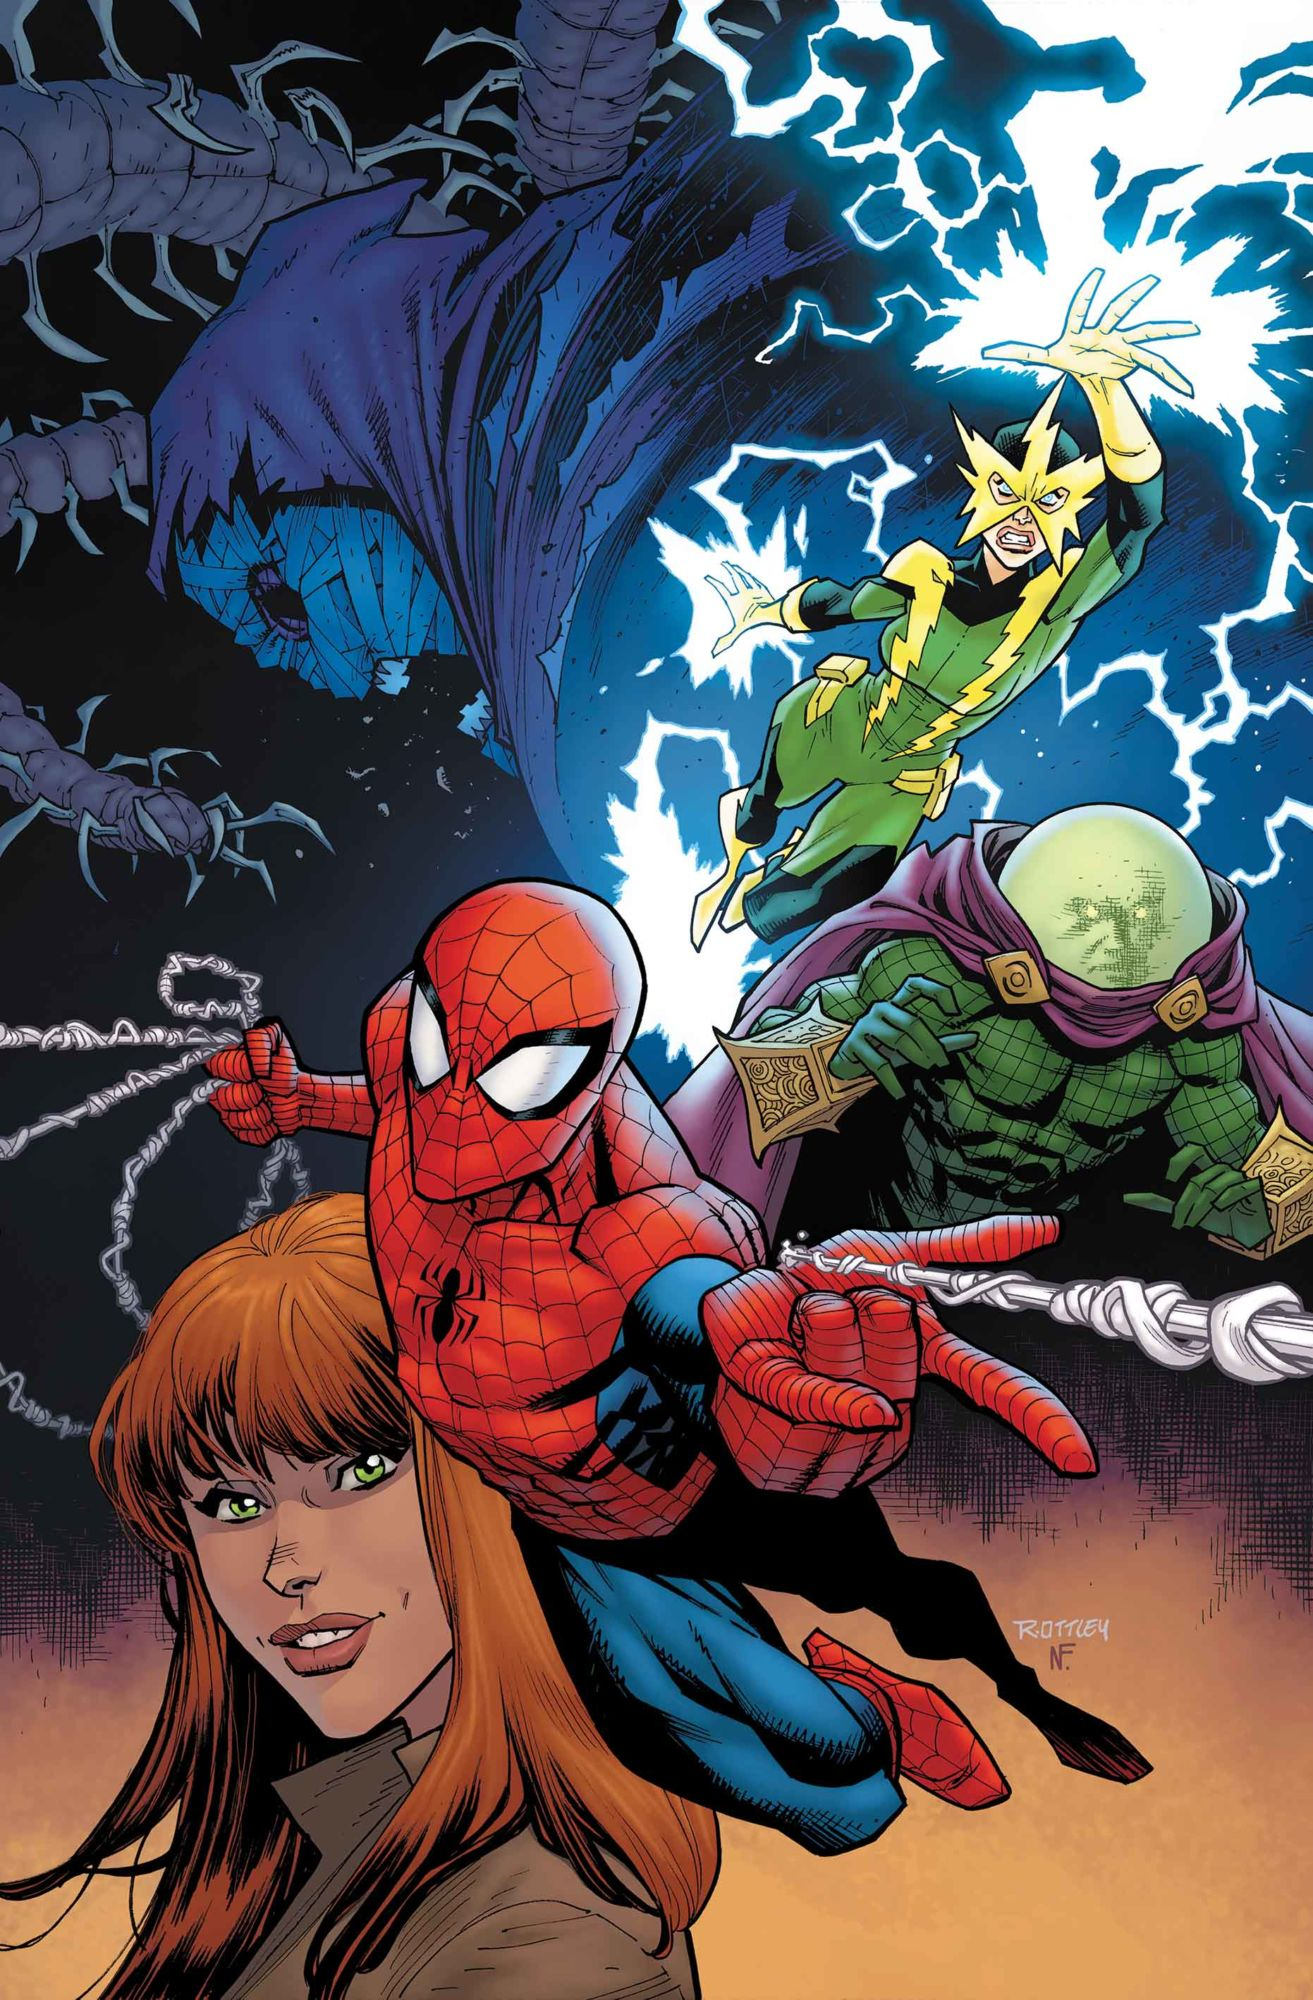 Amazing Spider-Man #25 Holds the Line at $7.99 in July